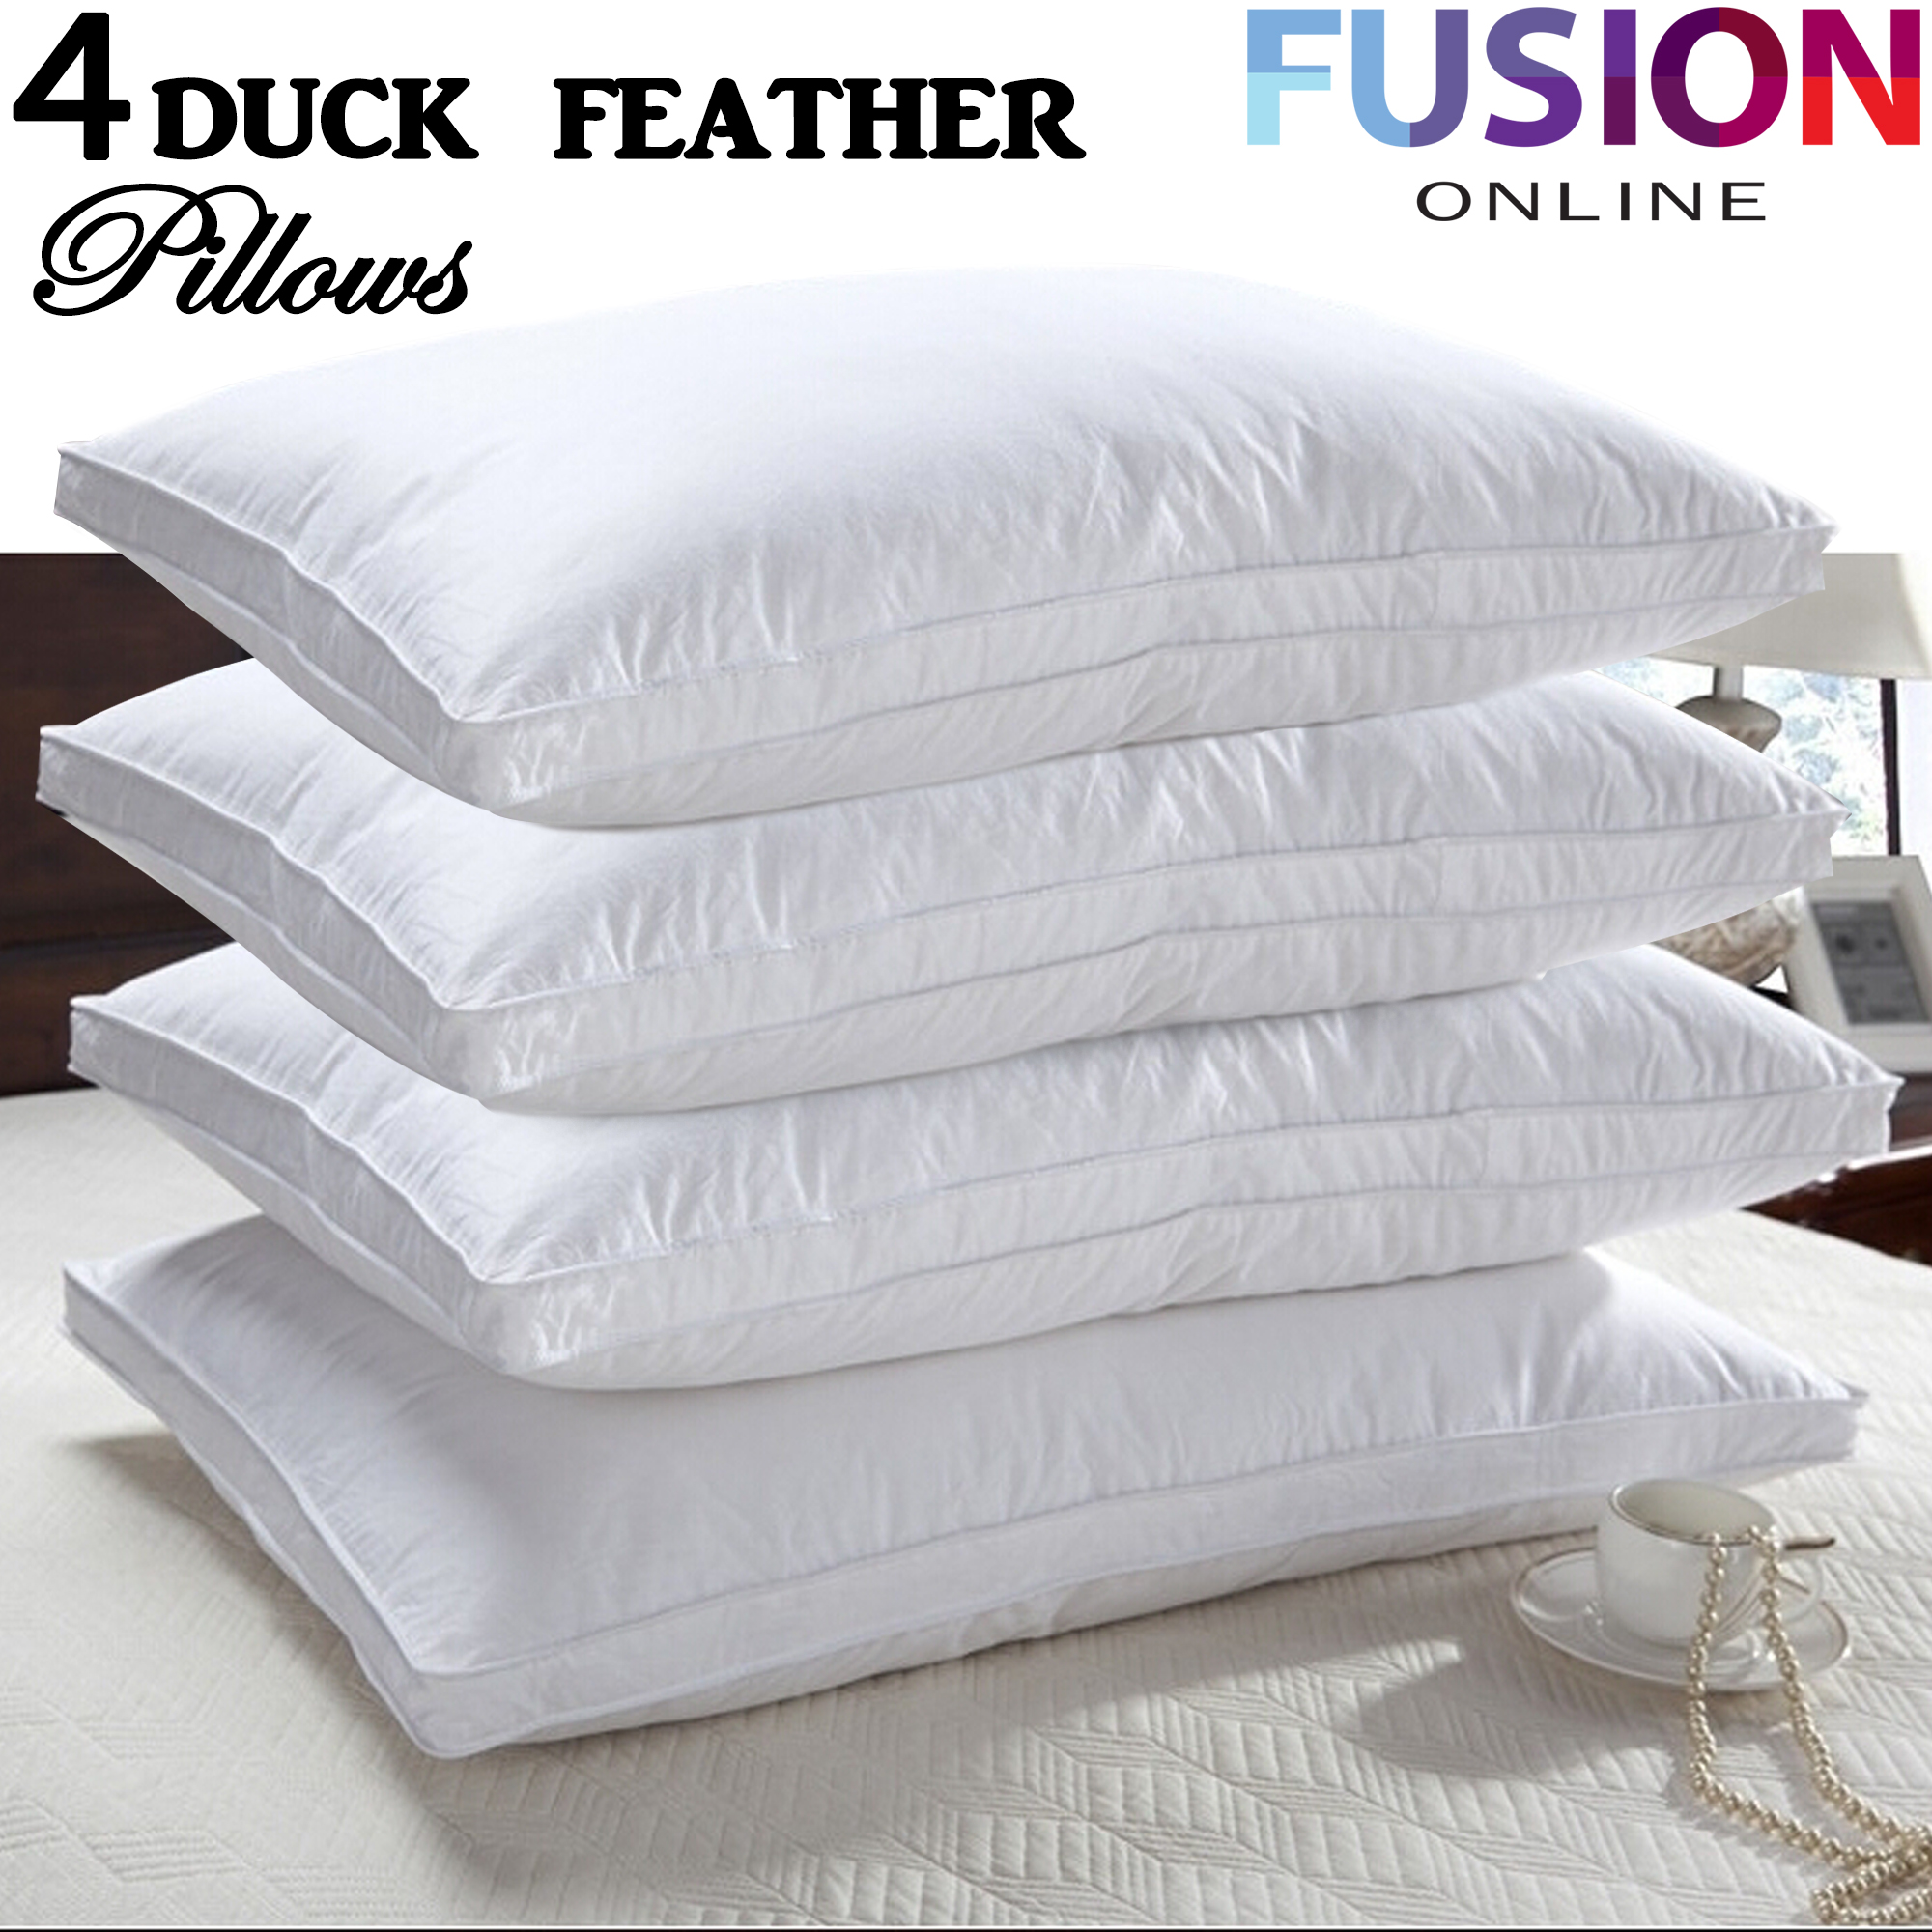 feather alliance plush duck pillow index bed pillows down quilted